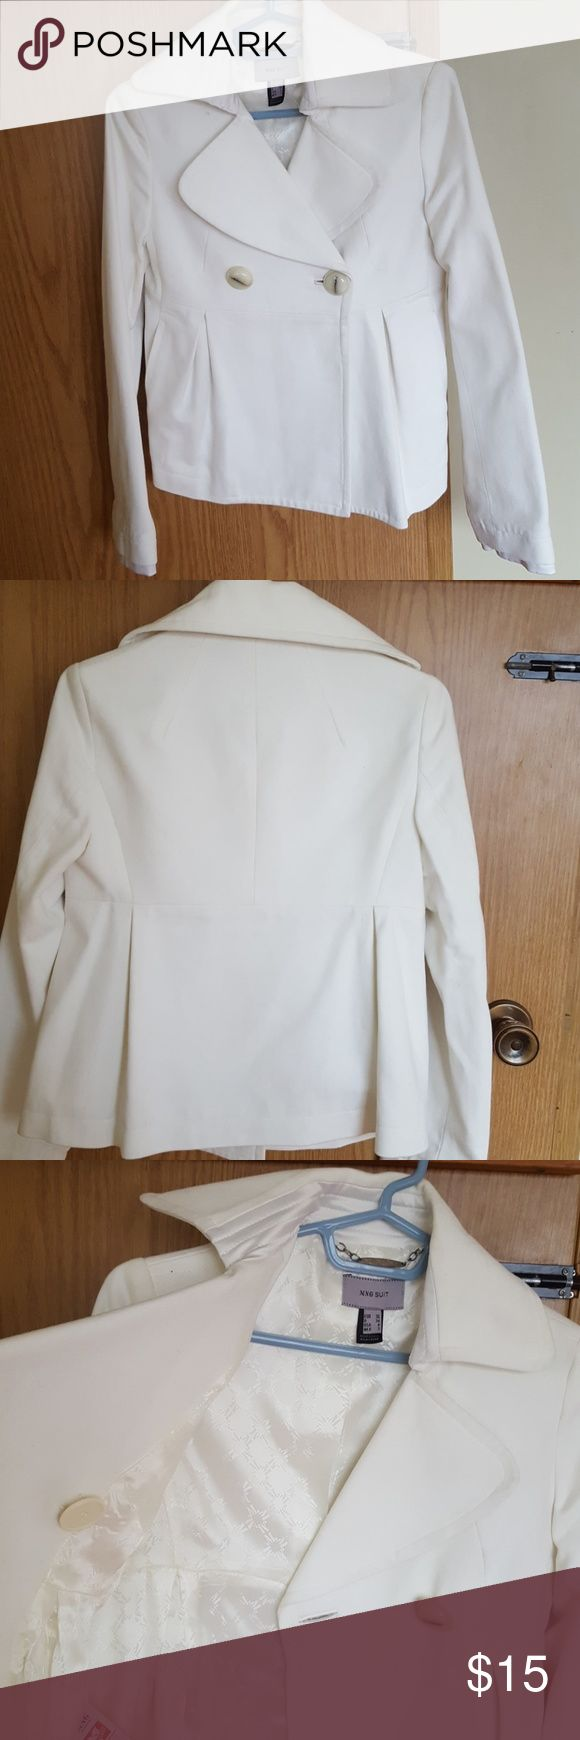 Mango white spring coat. White coat. Fits below hips. Pockets. Inner lining. Button enclosure with spare button. Worn once. Fits like a size small. Some stains but could be removed via dry cleaning. Mango Jackets & Coats